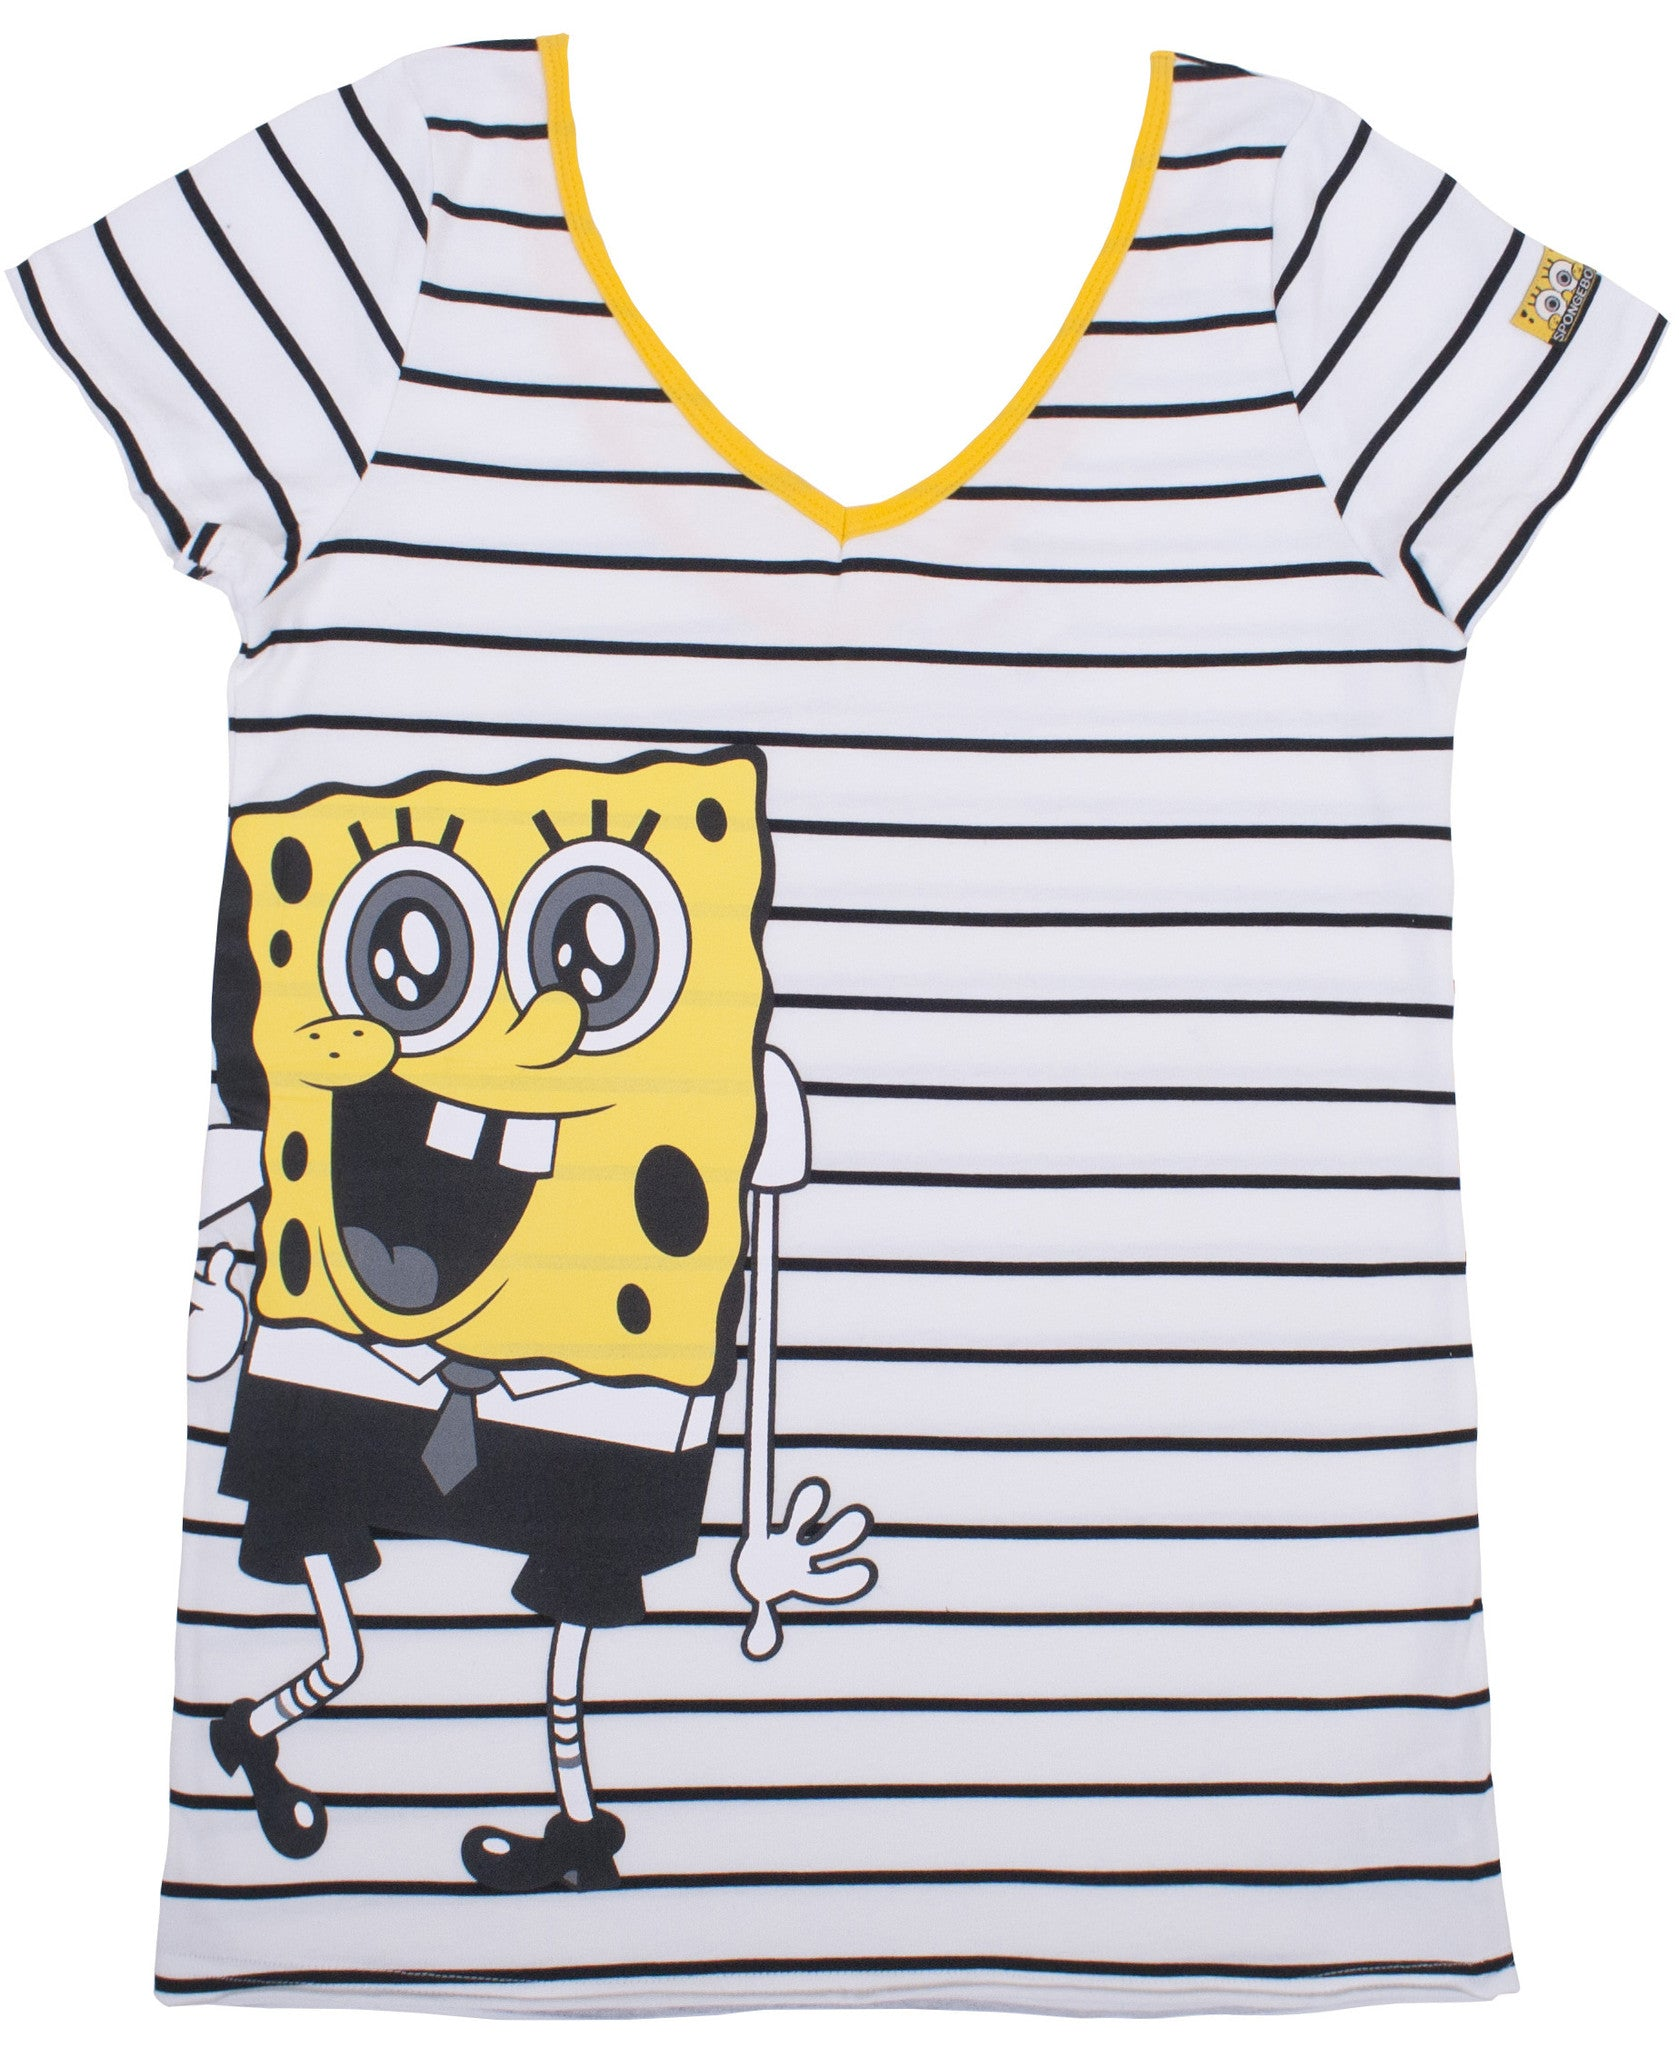 SpongeBob SquarePants Junior Monochrome V-neck Tee